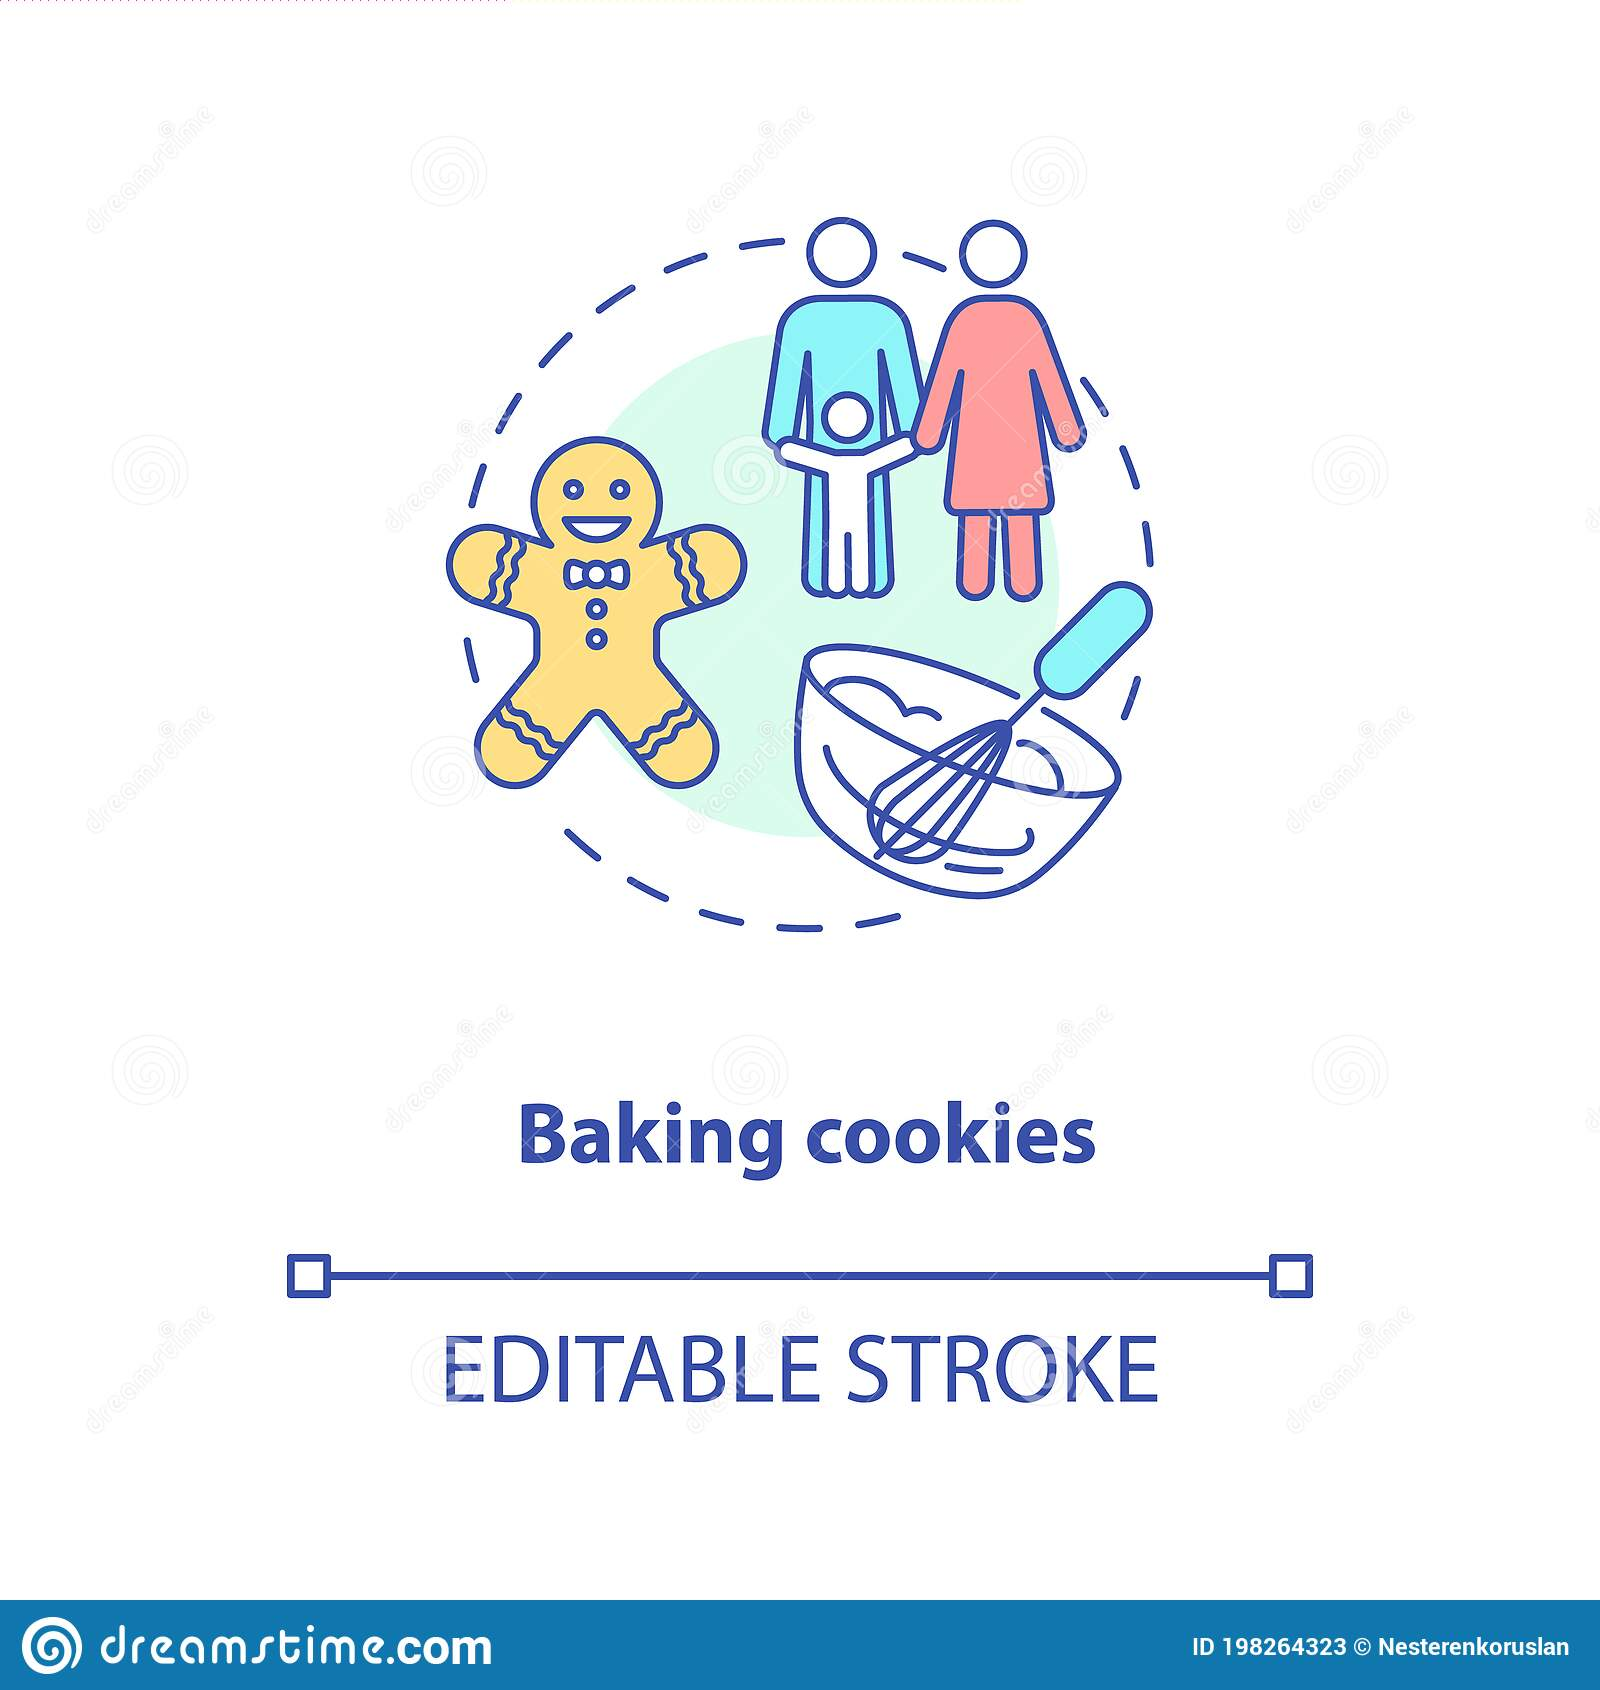 baking cookies concept icon stock vector illustration of abstract indoor 198264323 baking cookies concept icon stock vector illustration of abstract indoor 198264323